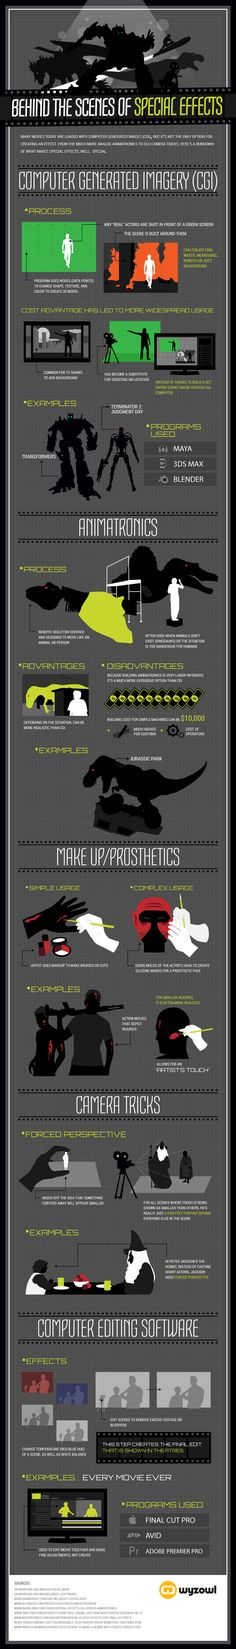 Behind The Scenes of Special Effects #infographic #SpecialEffects #Movies